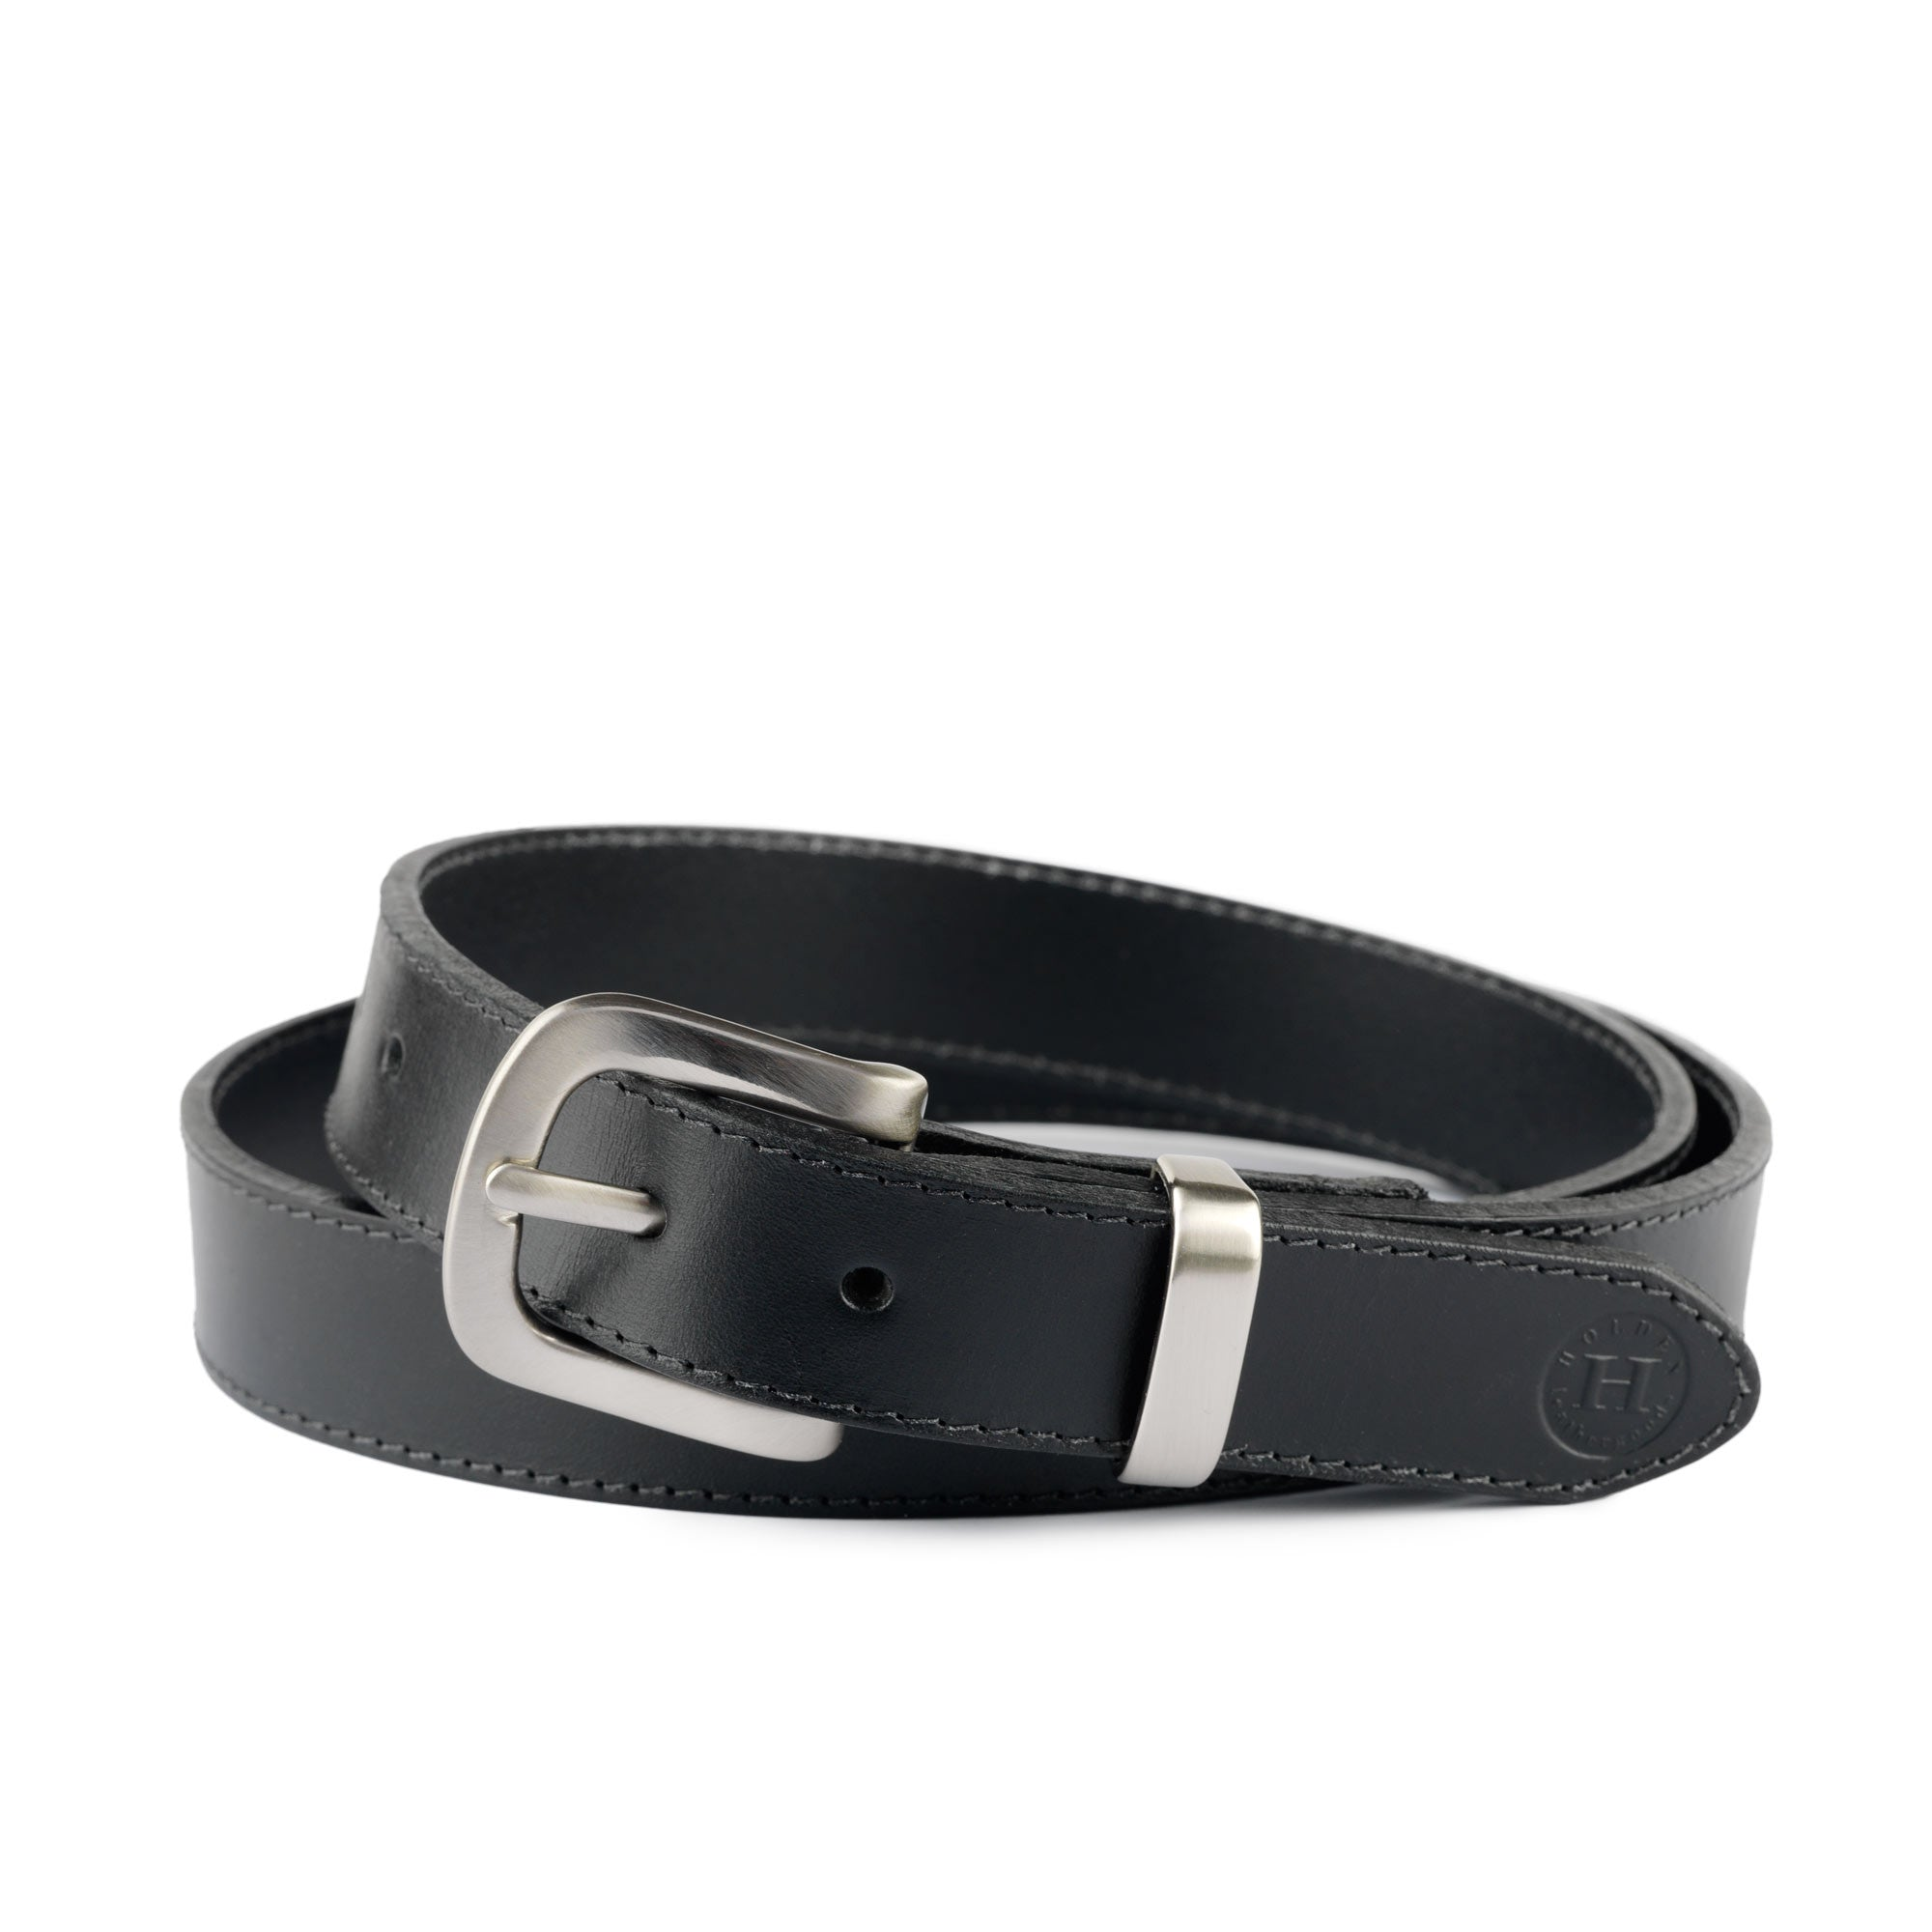 Holden Casual Leather Belt CB1 Black - Holden Leathergoods, leather bags handmade in Ireland